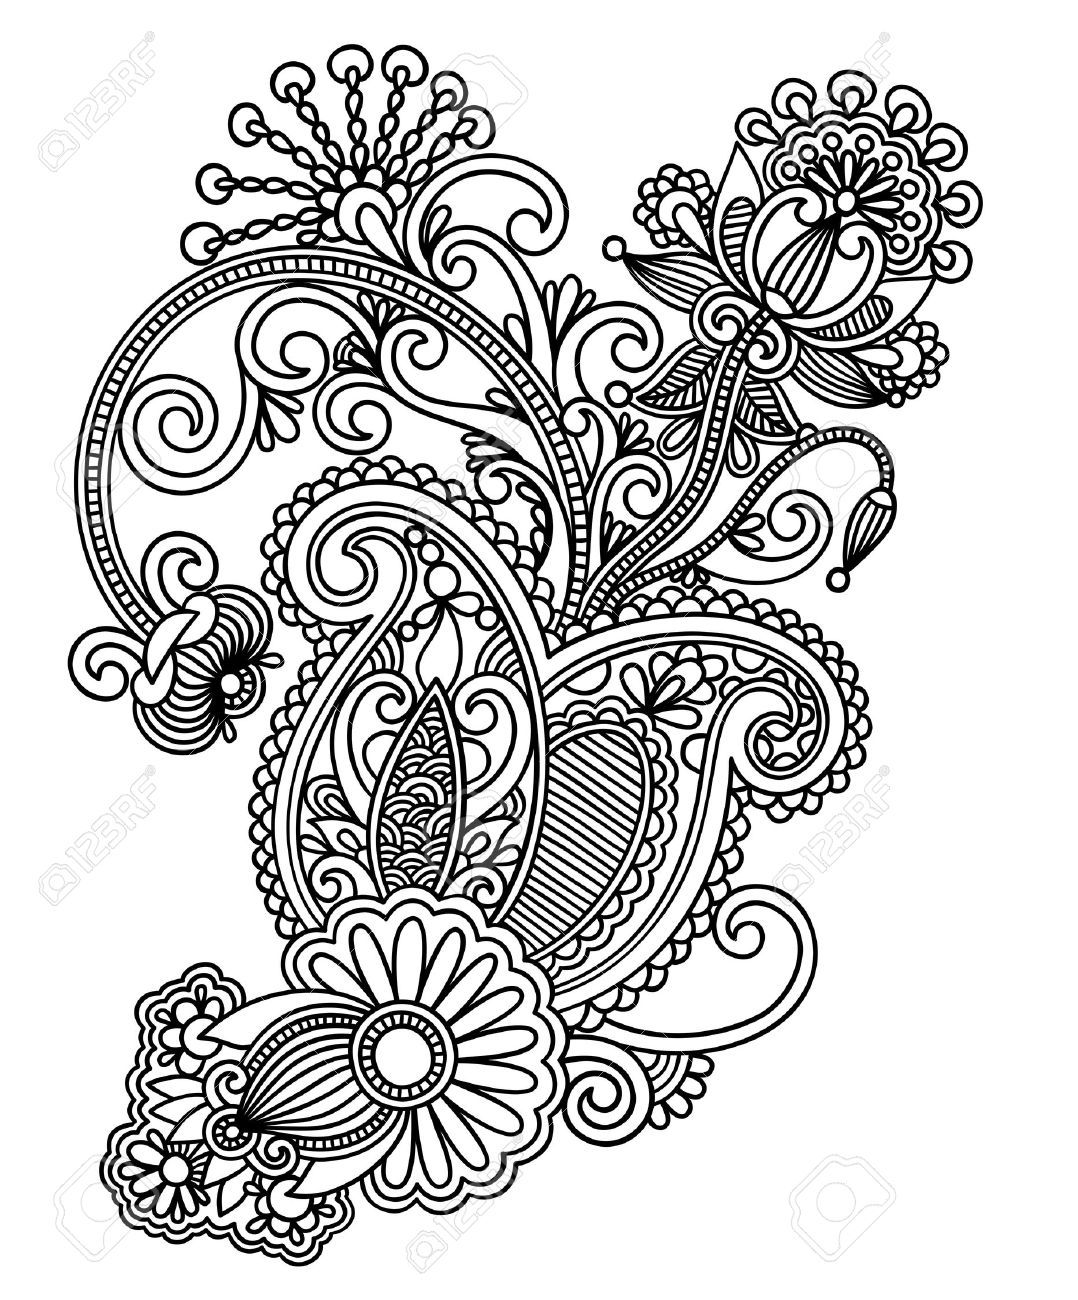 Henna Design Line Art : Aztec floral design google search tattoo ideas